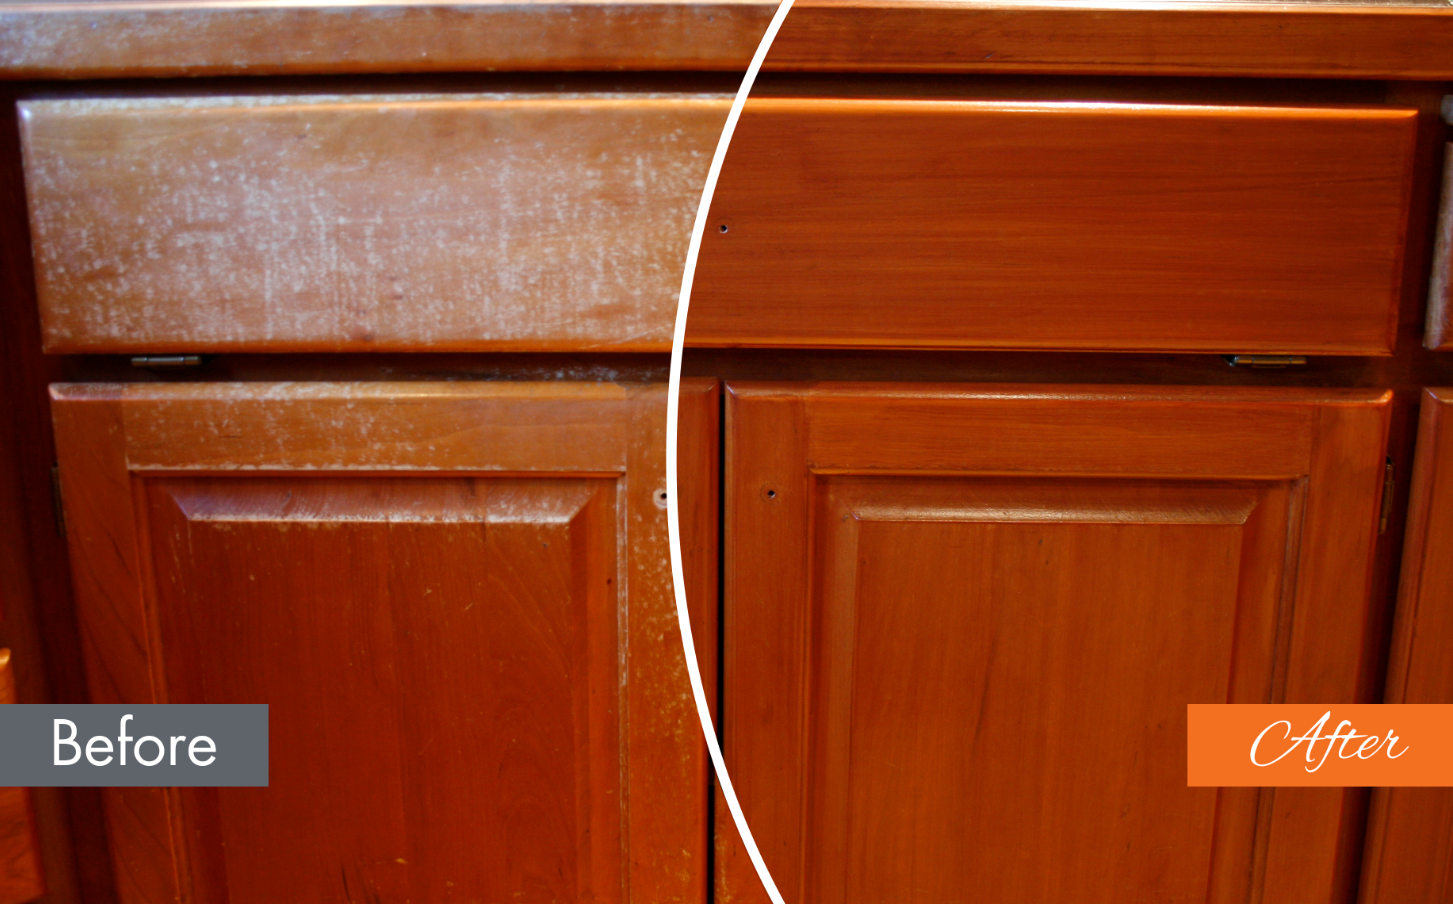 The Classic Cabinet Refinish Job Is One That Can Revive Your Old Worn Out Cabinets By Restoring Origina Refinishing Cabinets Classic Cabinets Wood Refinishing